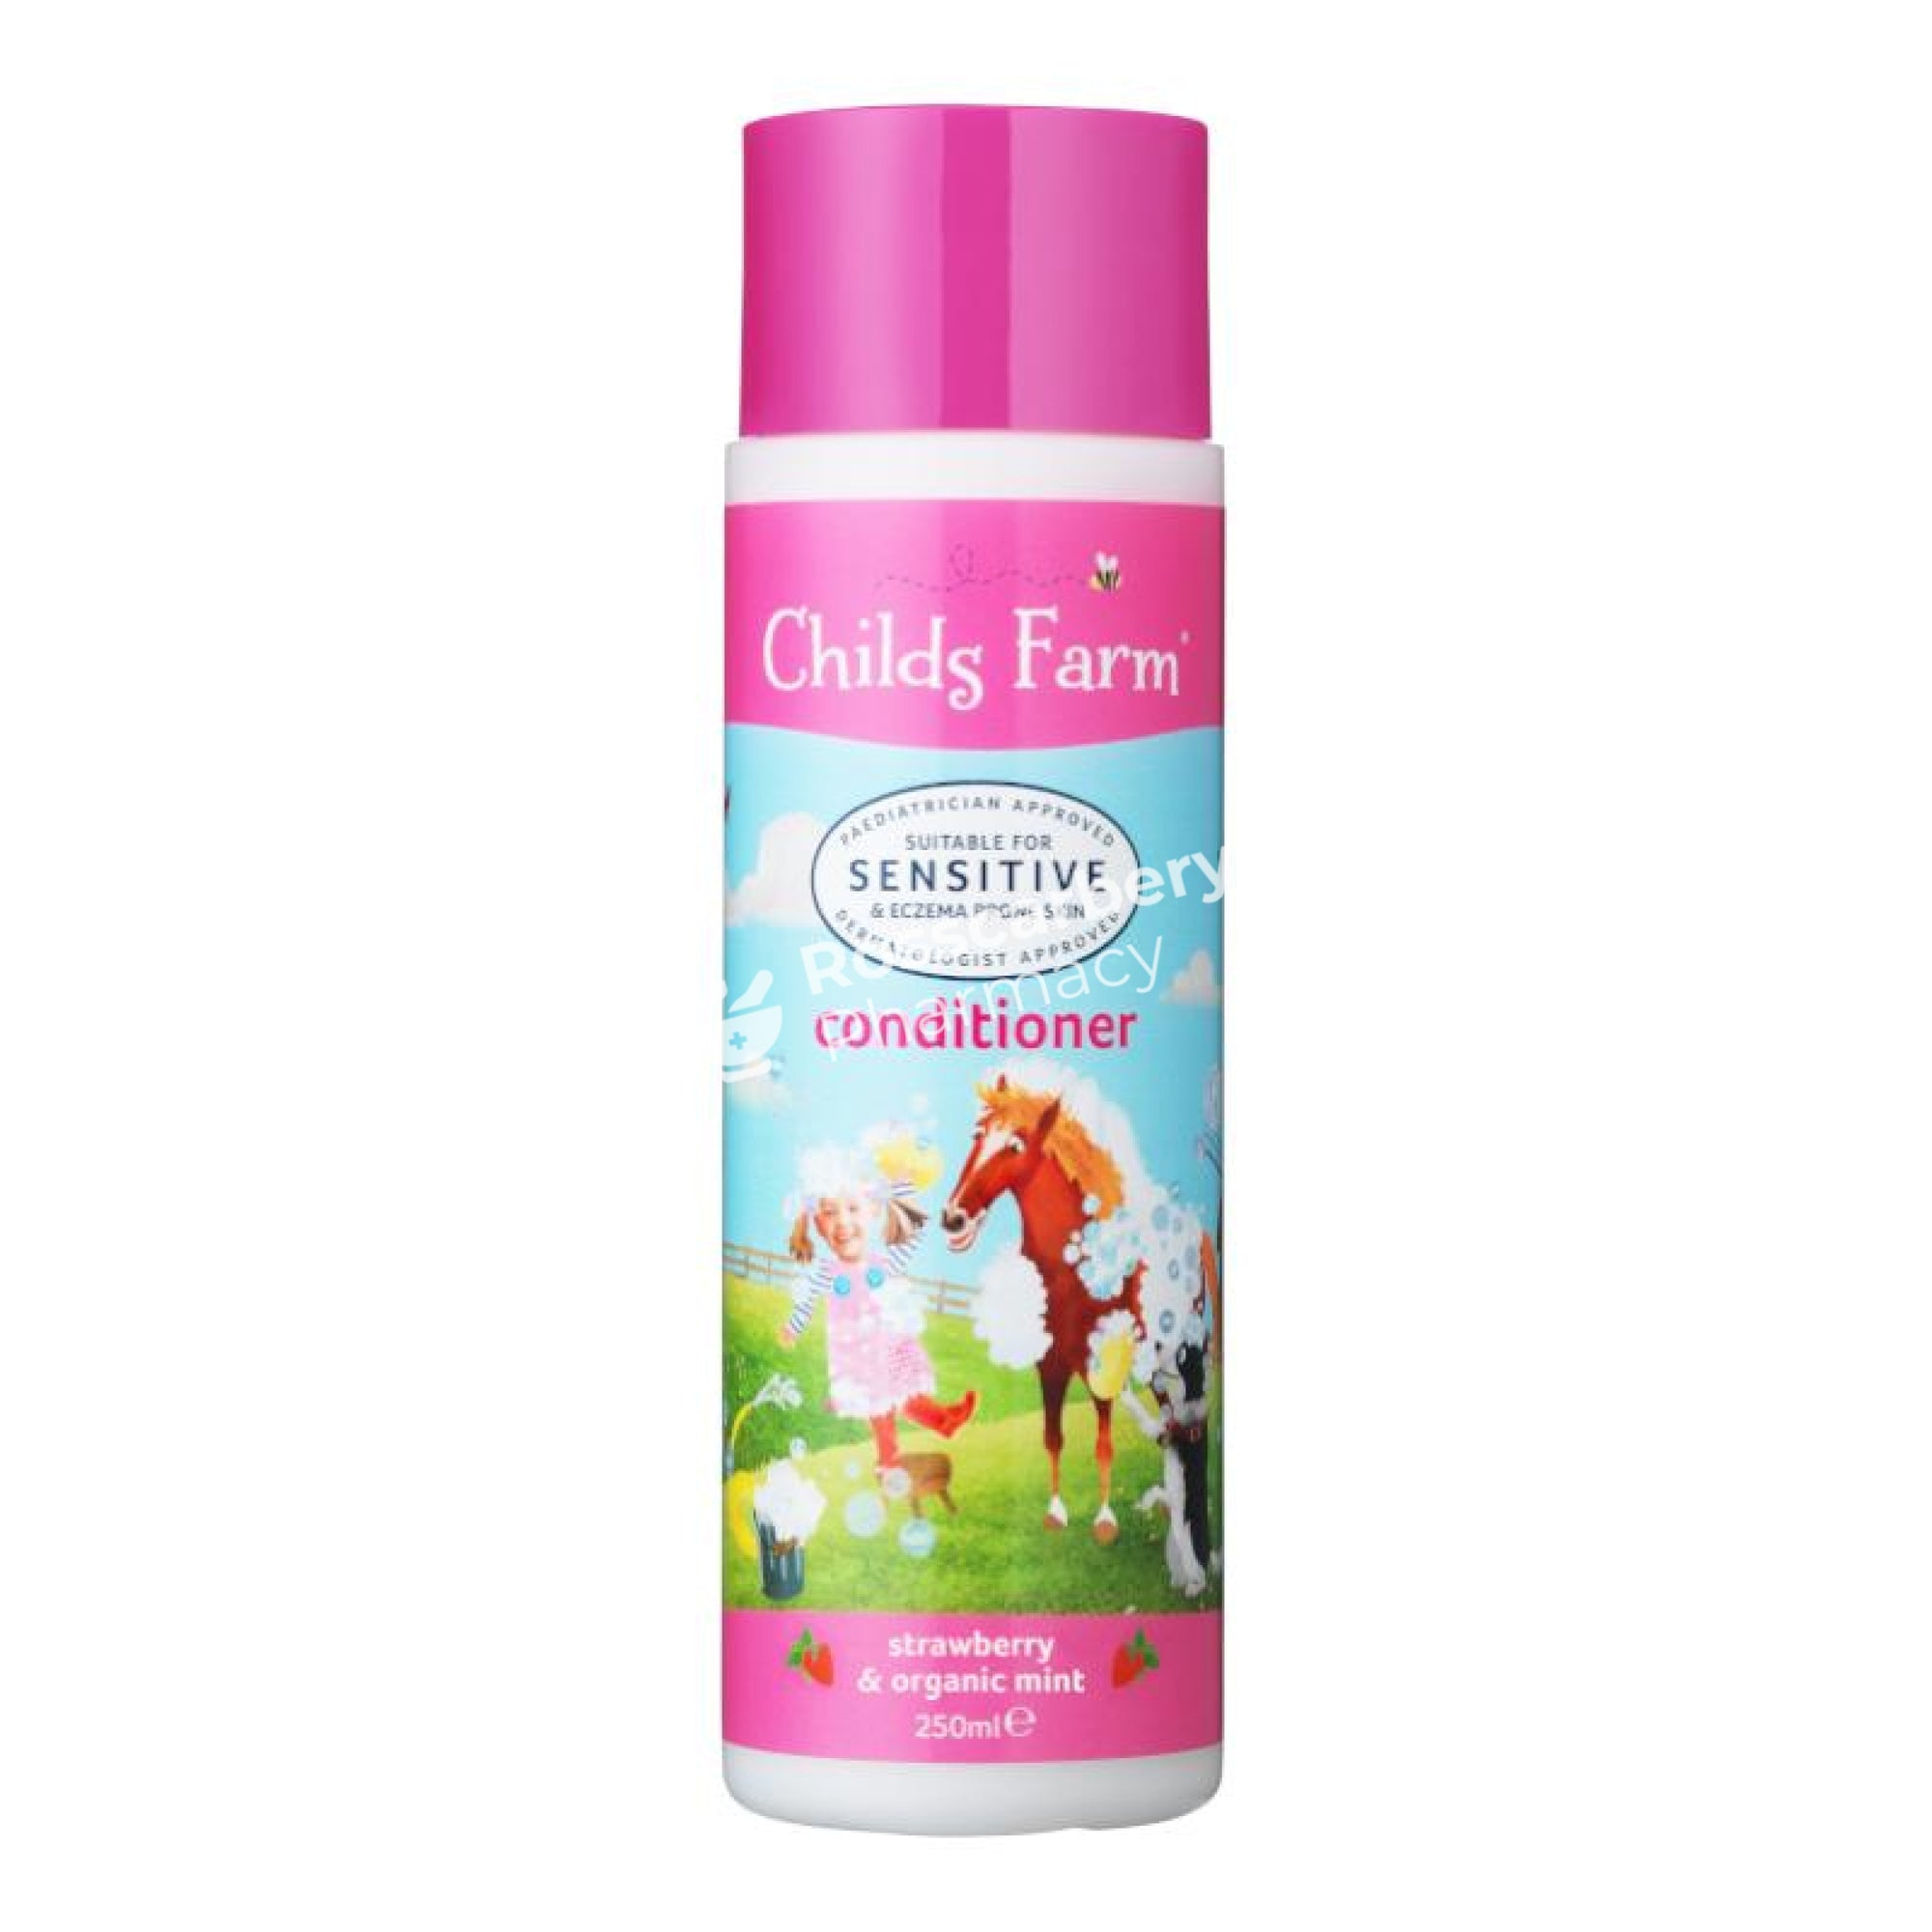 Childs Farm Conditioner - Strawberry & Organic Mint Baby Bath Hair